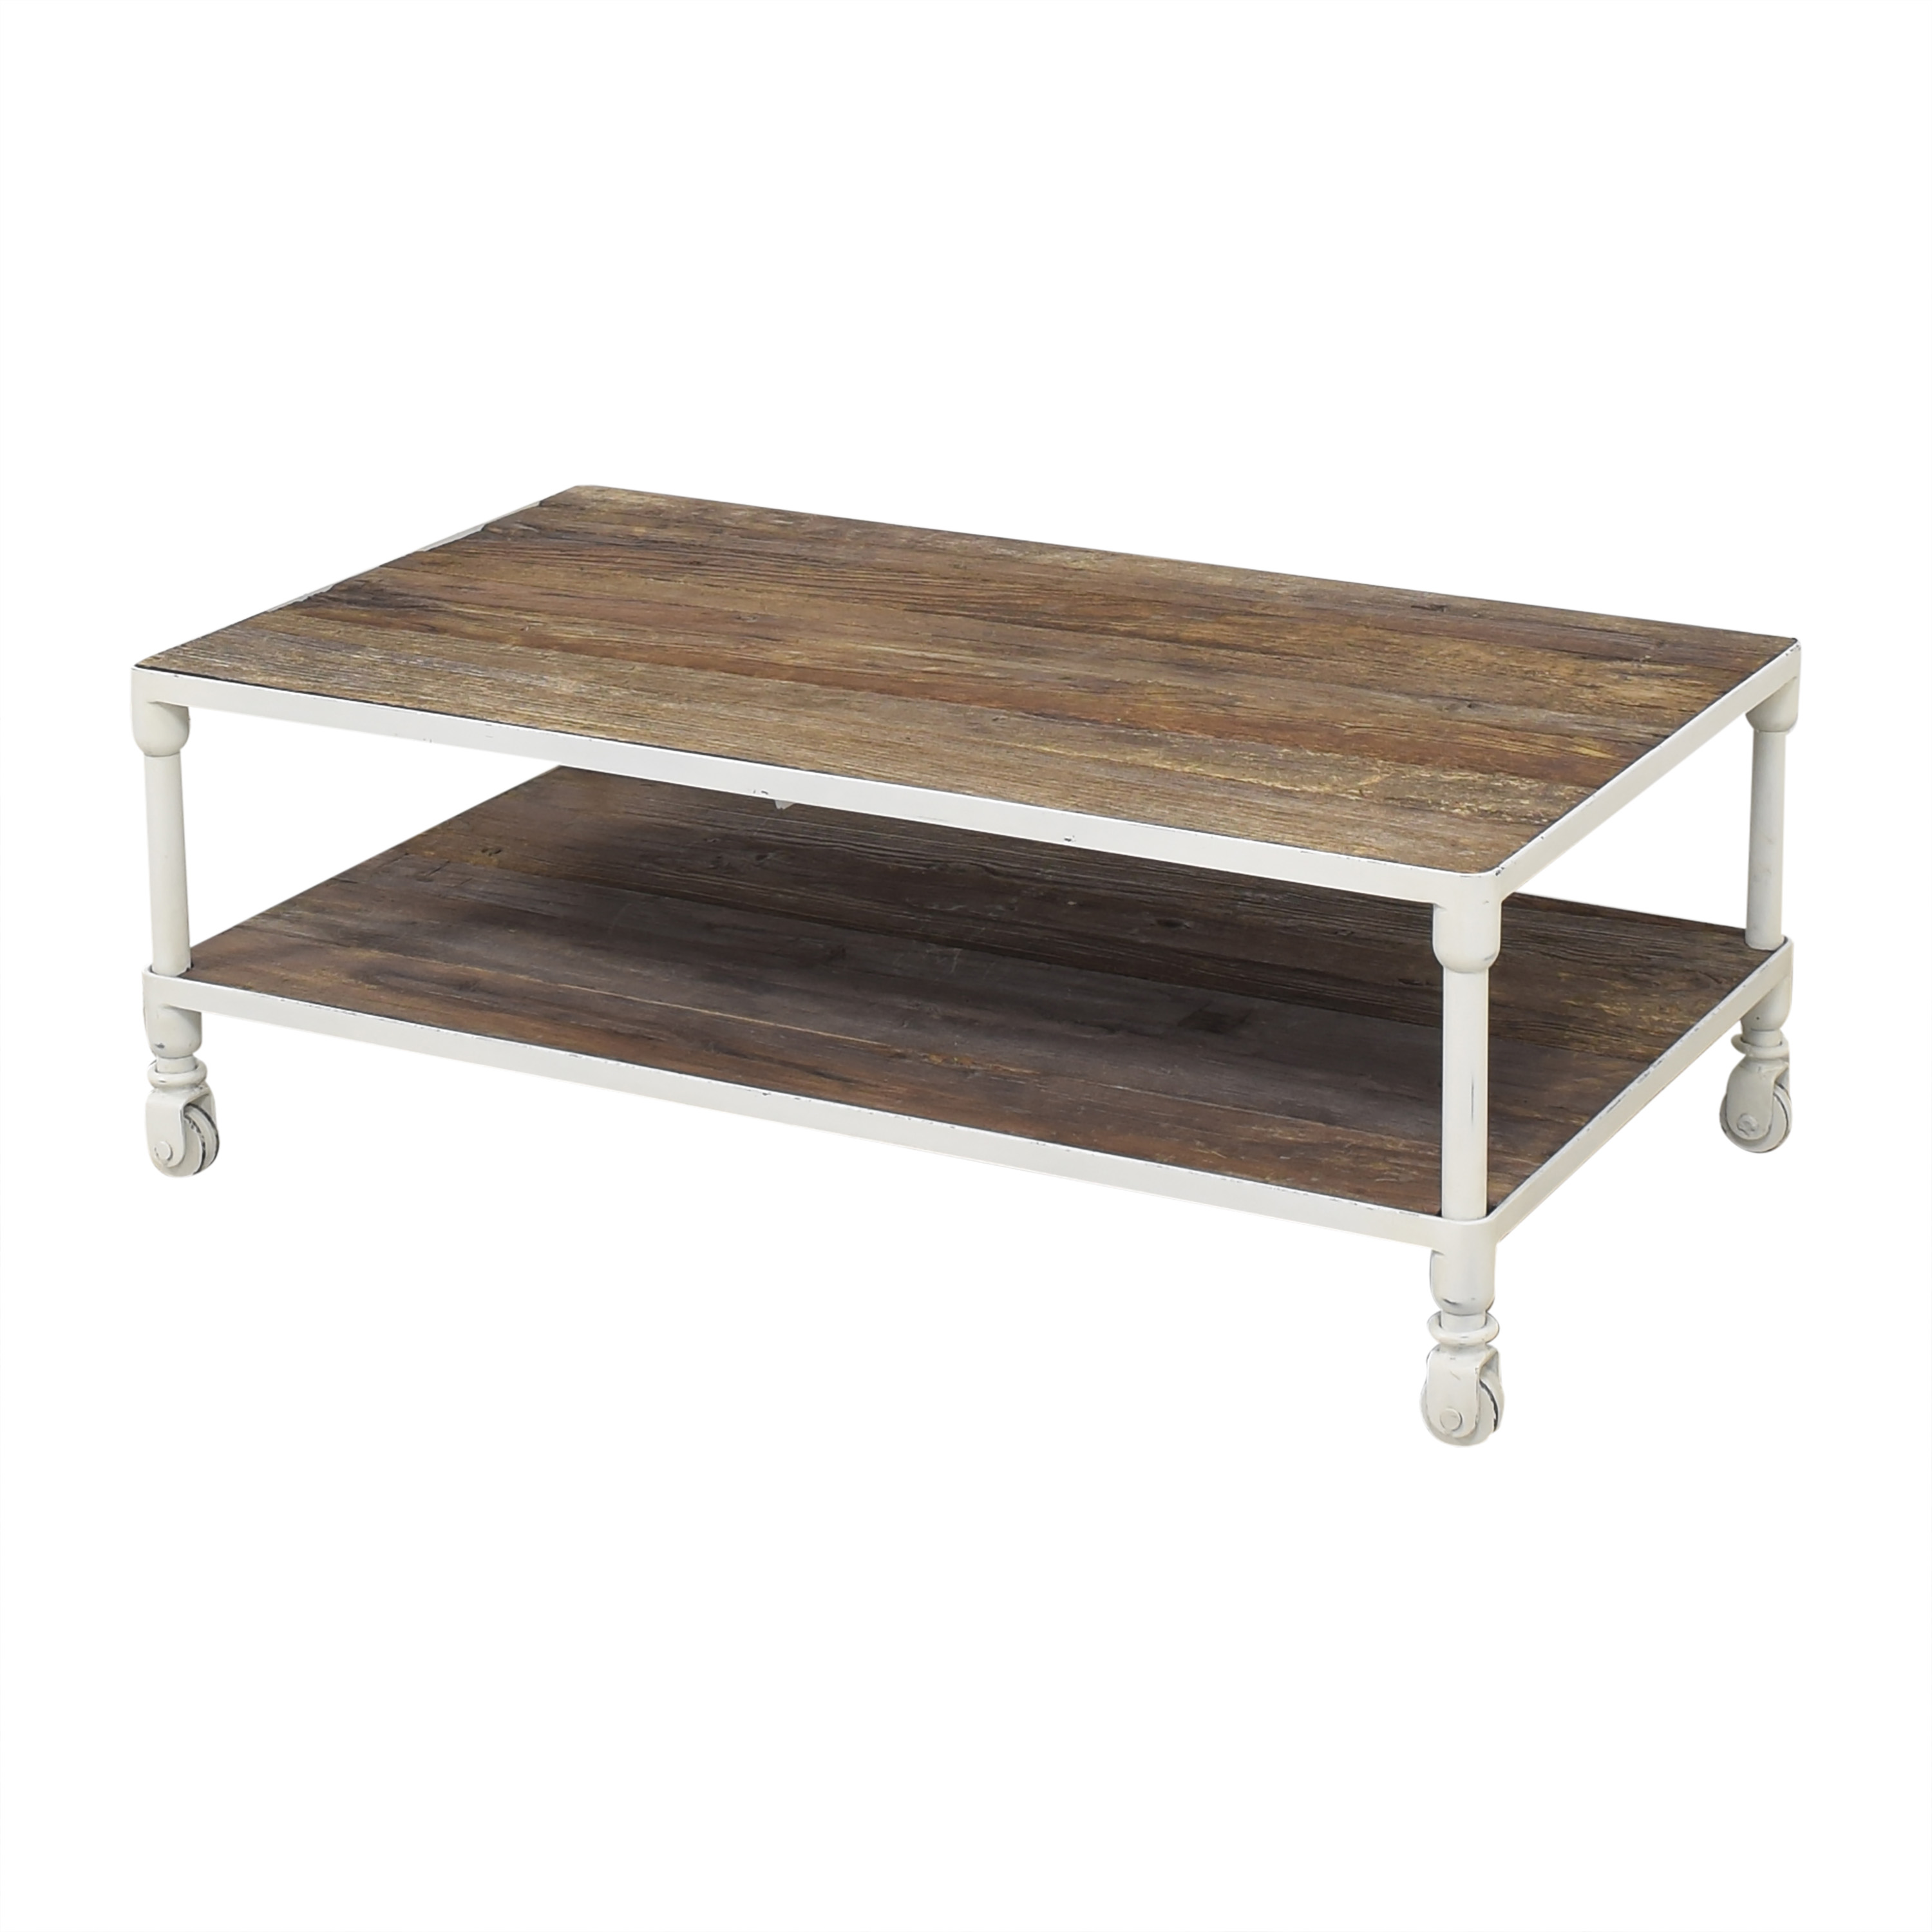 Restoration Hardware Dutch Industrial Coffee Table / Tables